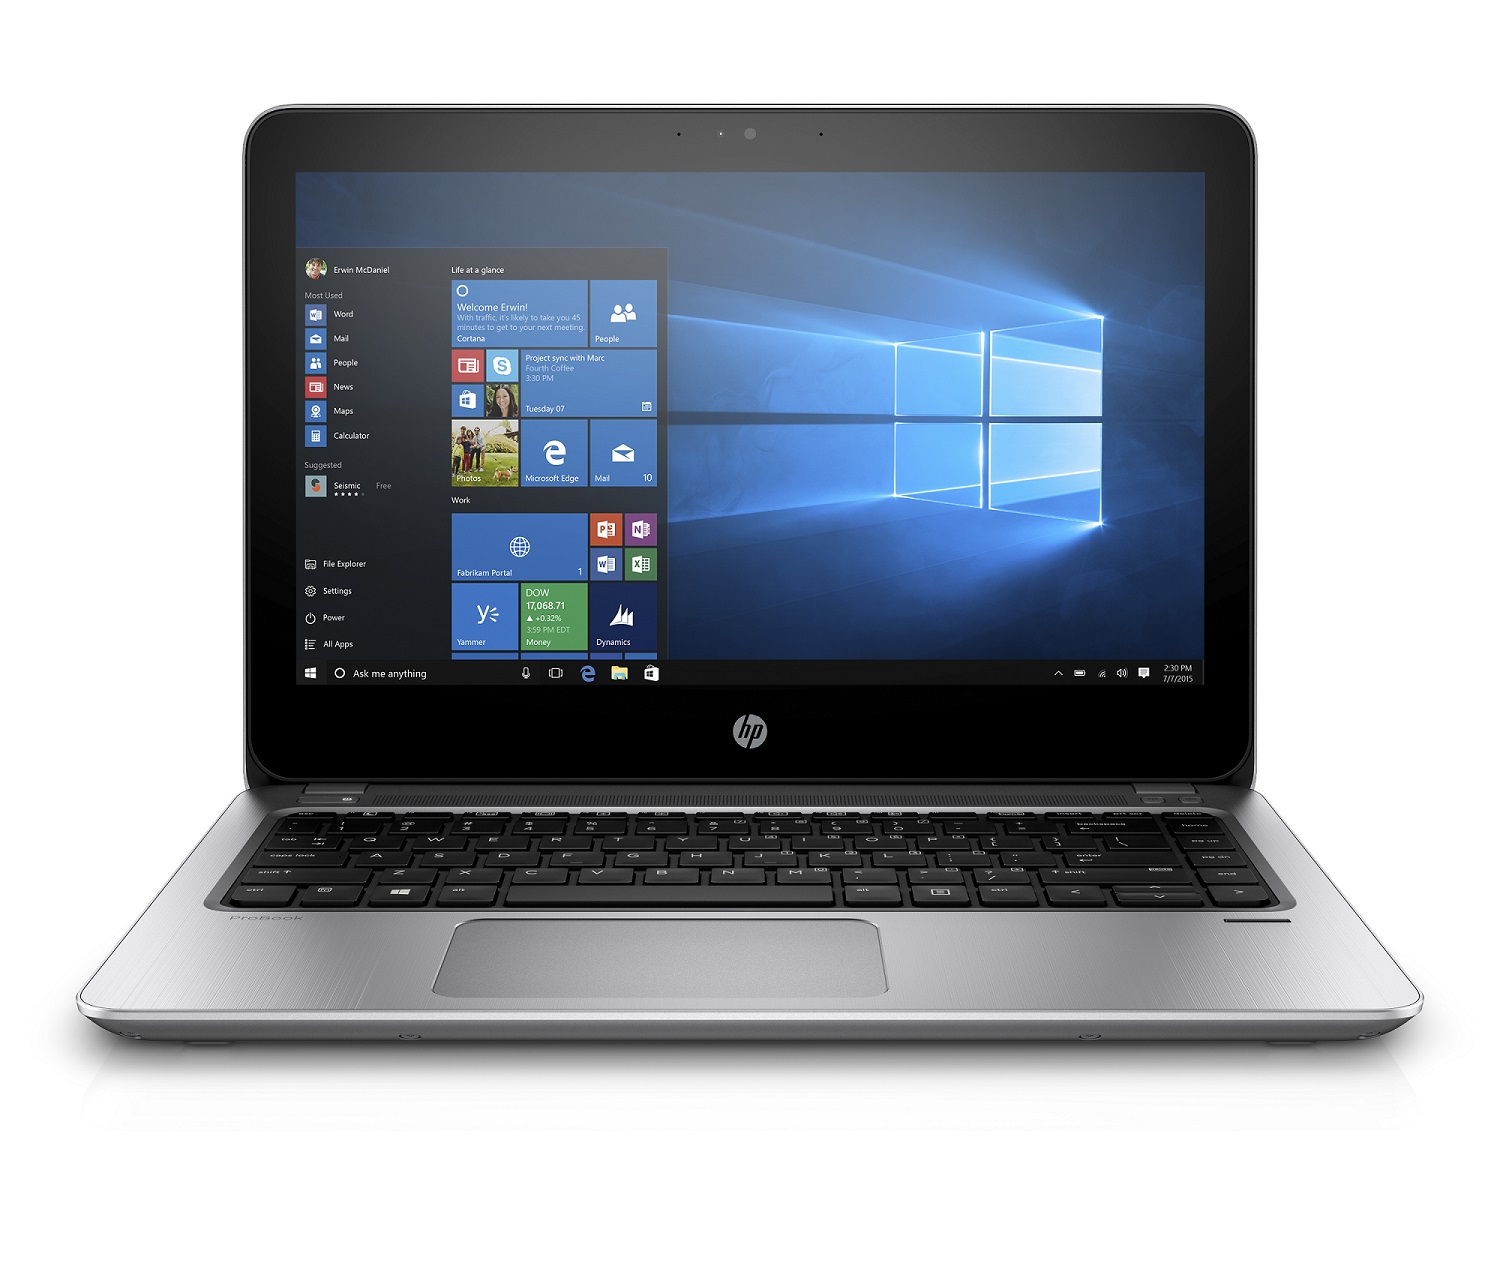 "HP ProBook 430 G4 13.3"" HD/i3-7100U/4G/128SSD/VGA/HDMI/RJ45/WIFI/BT/MC"